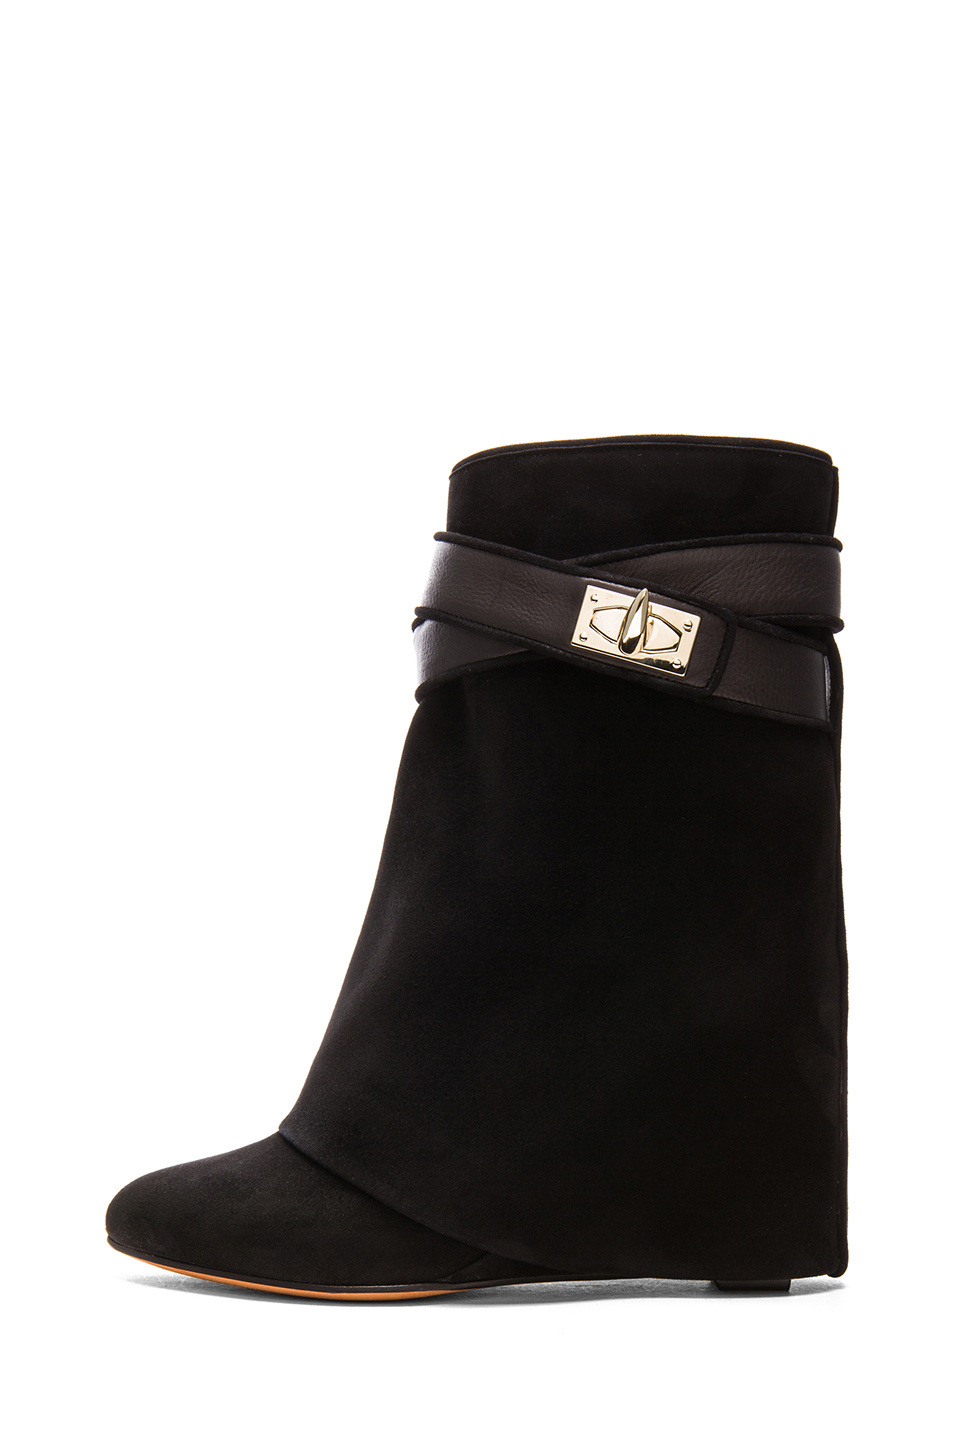 givenchy suede shark lock boot in black lyst